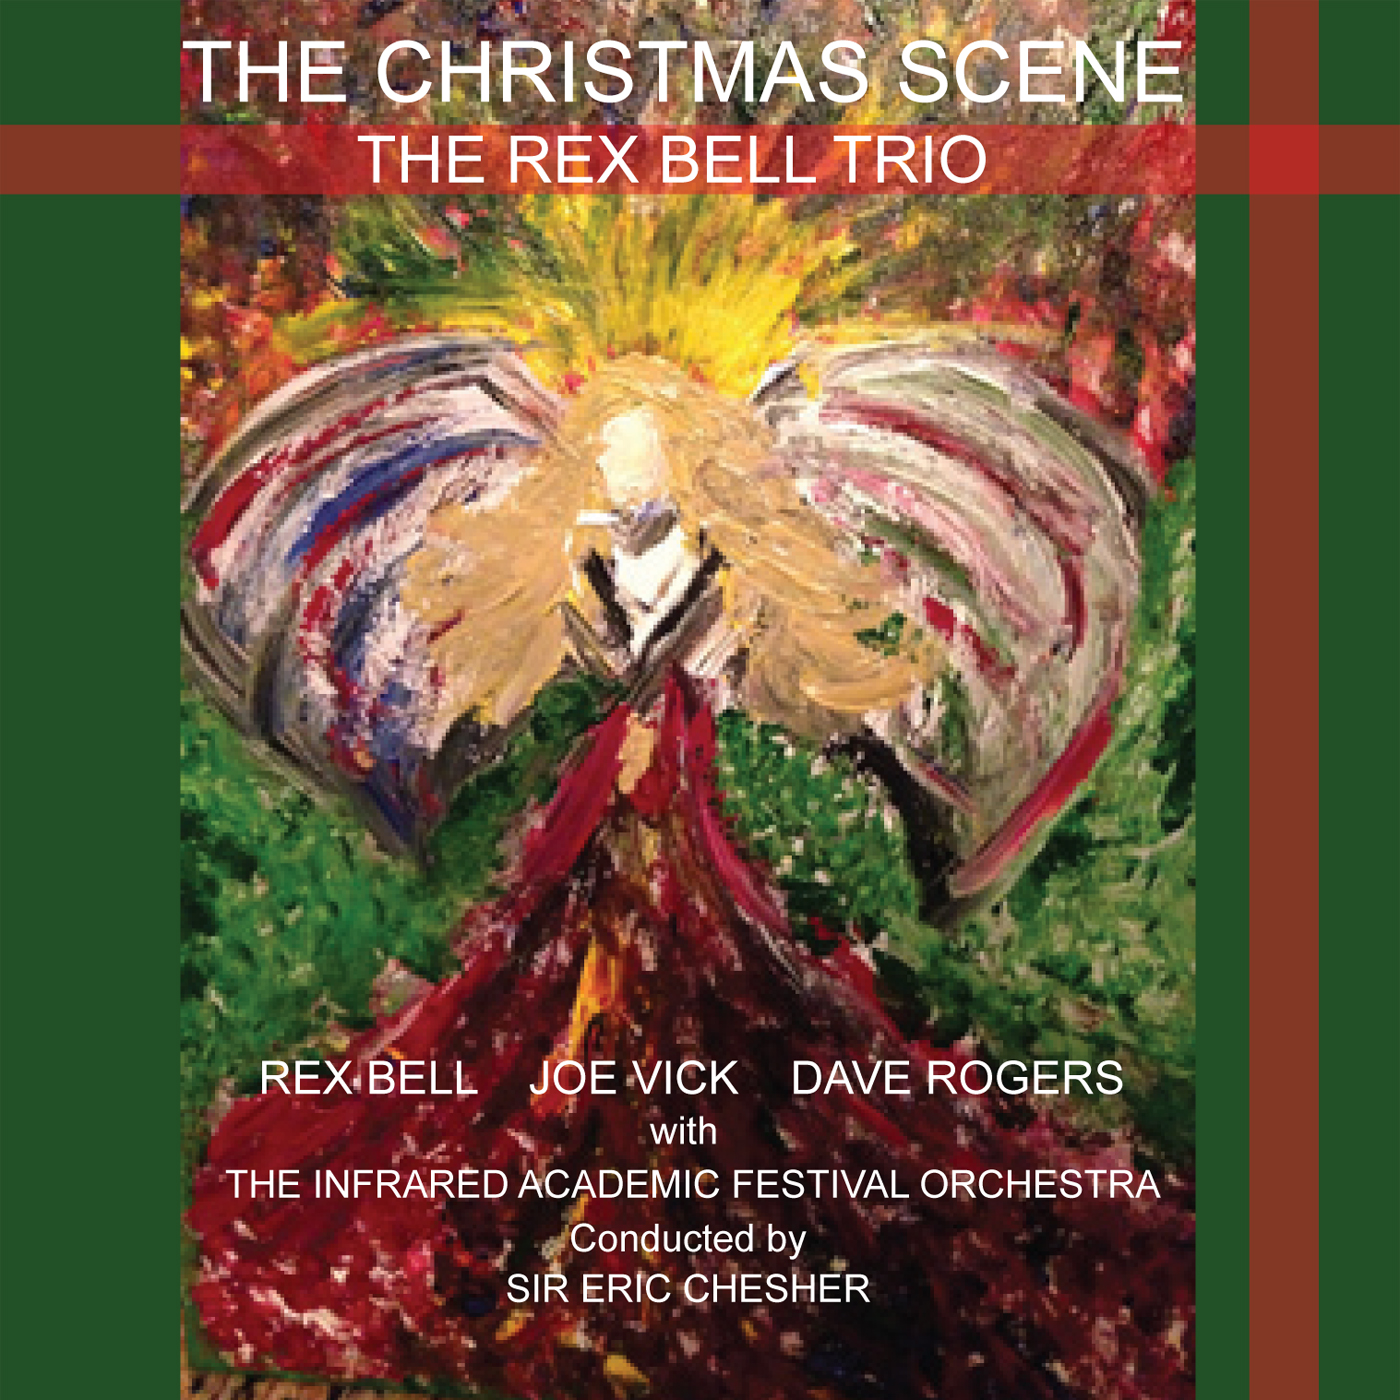 Rex_Bell_Trio_The_Christmas_Scene_Cover